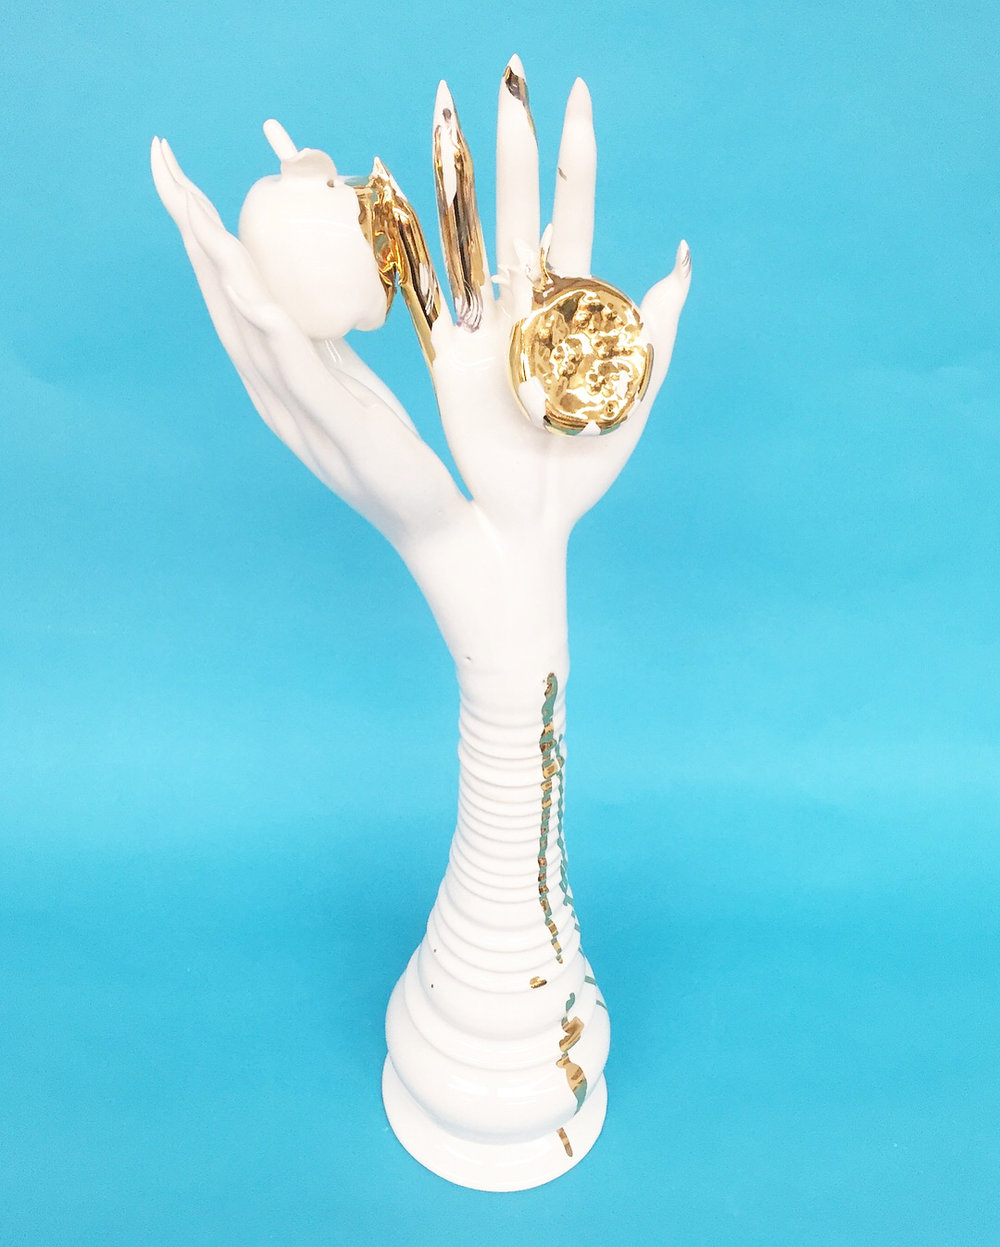 Untitled, 2018 © Jen Dwyer. Porcelain, glaze, 24k gold luster. Courtesy of the artist.